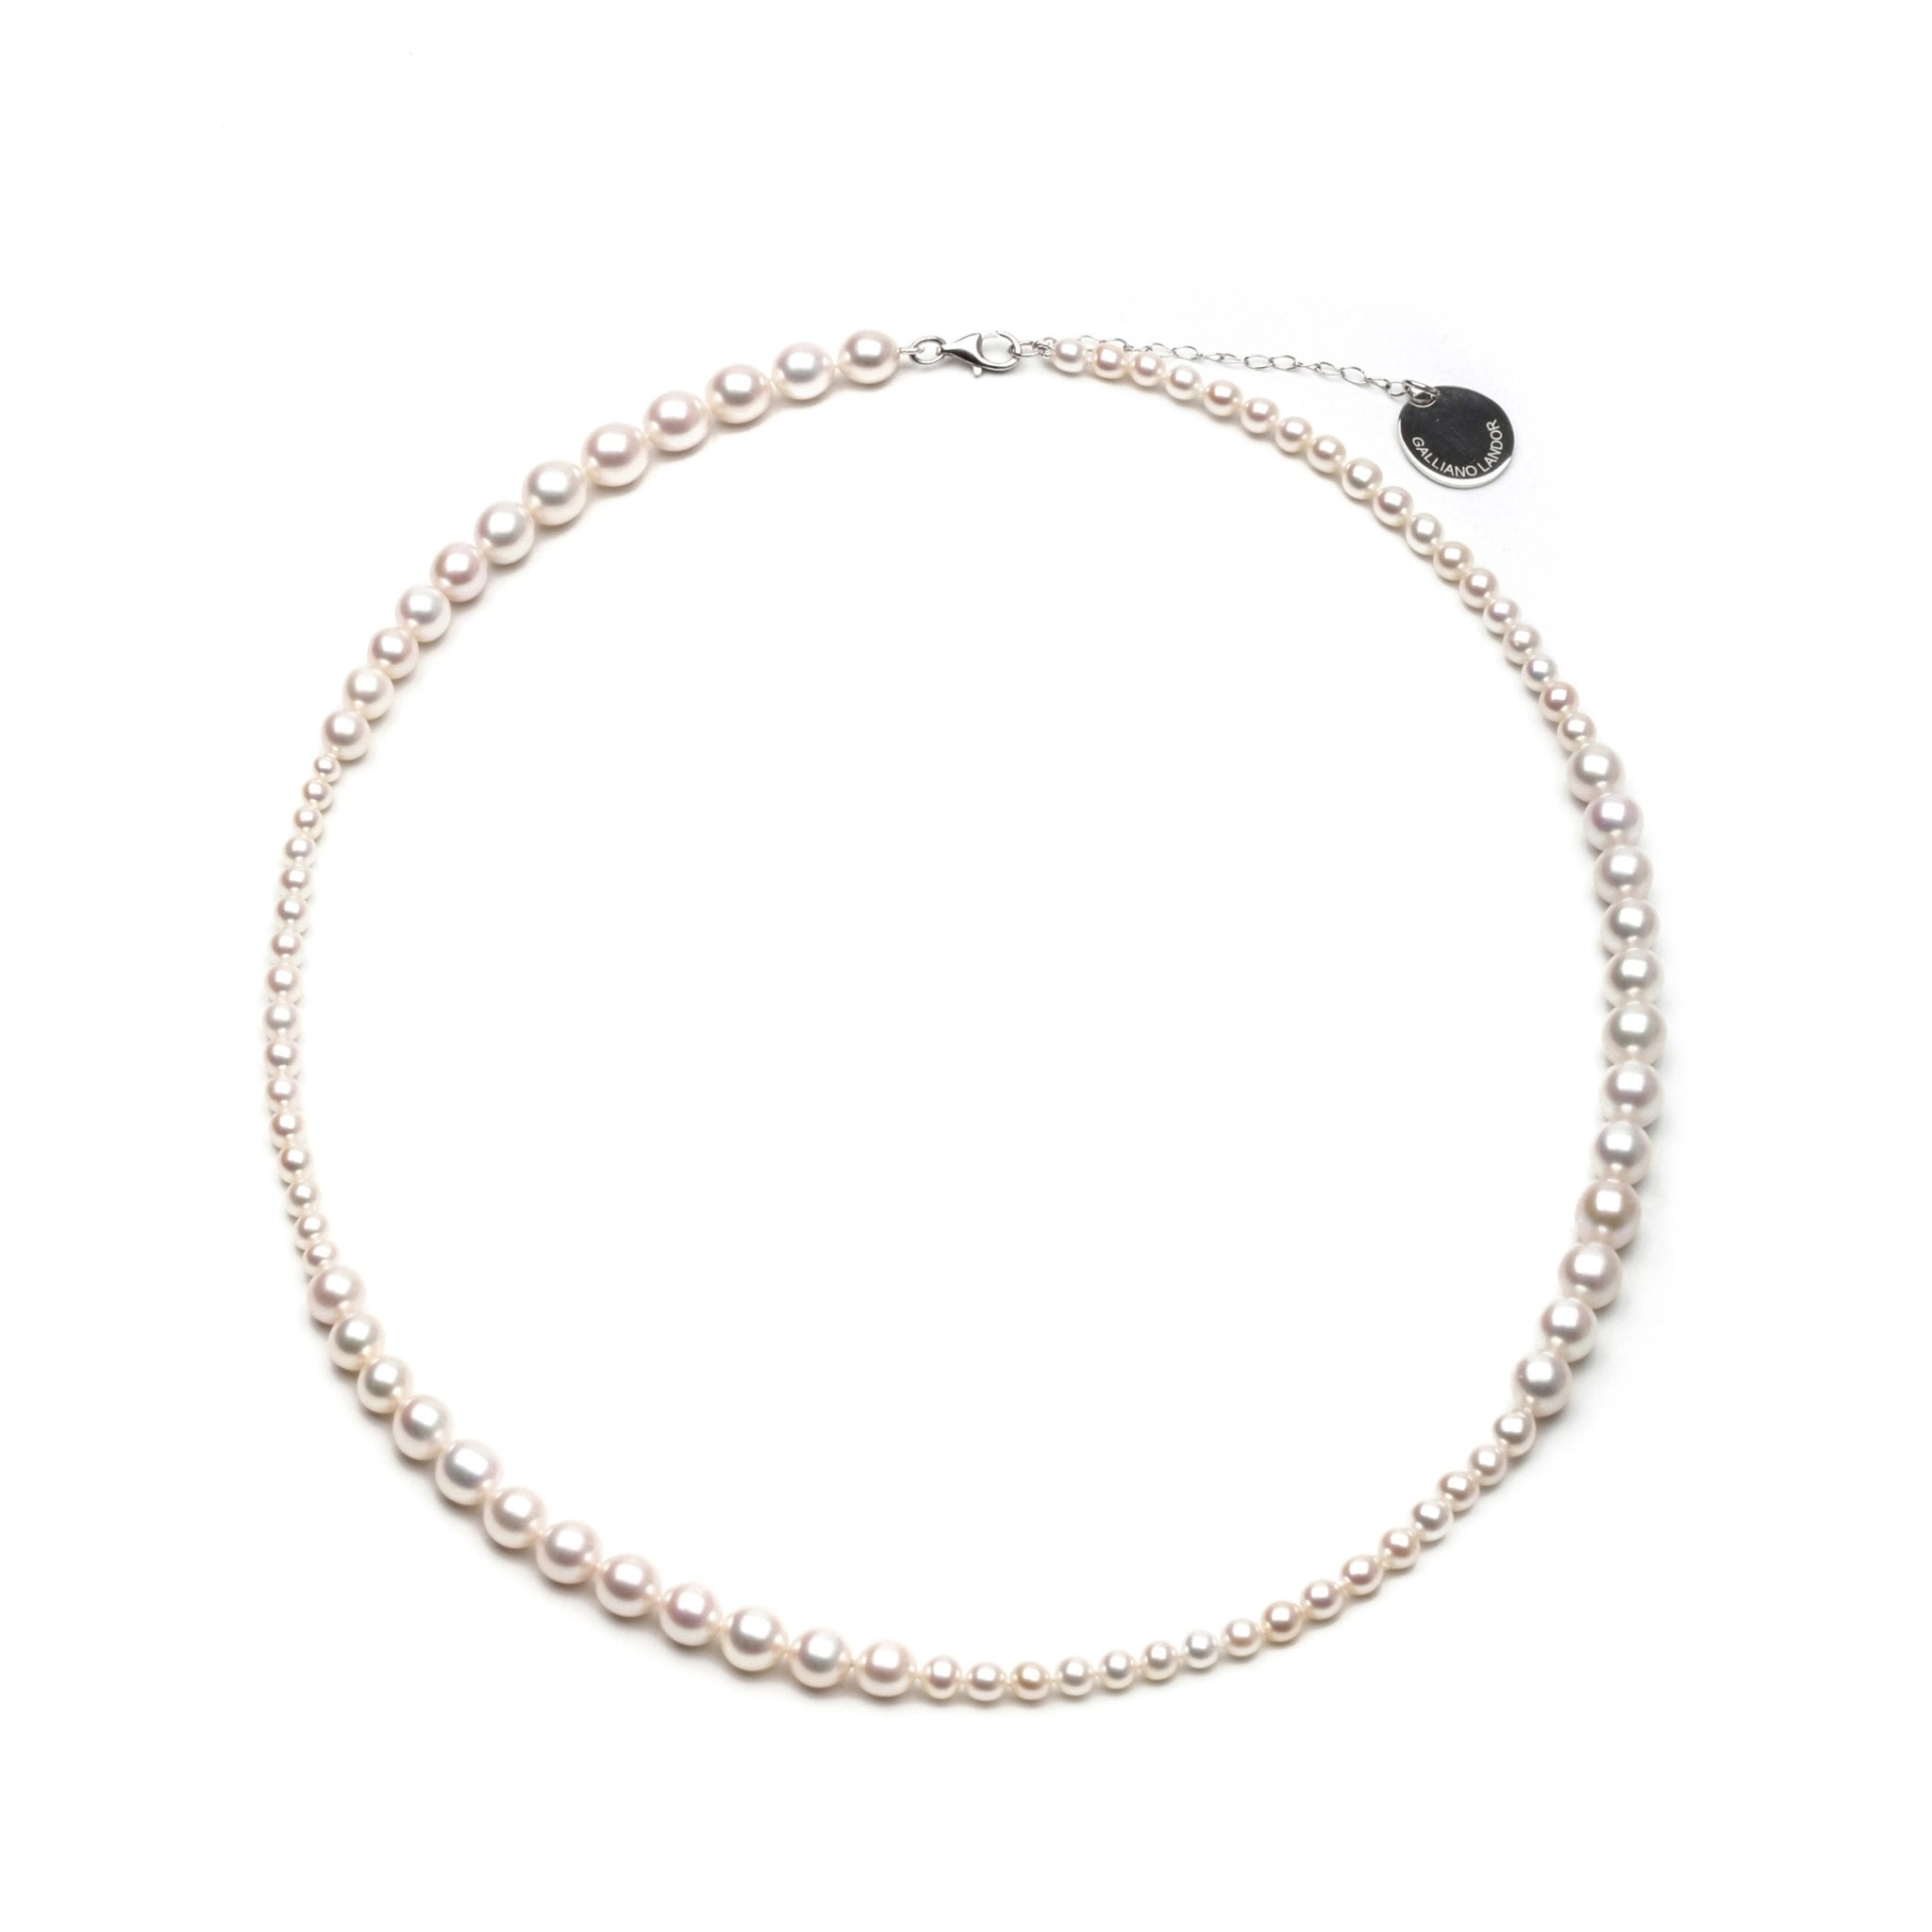 GALLIANO LANDOR PGL-401 Pearl Necklace | MADA IN CHINA